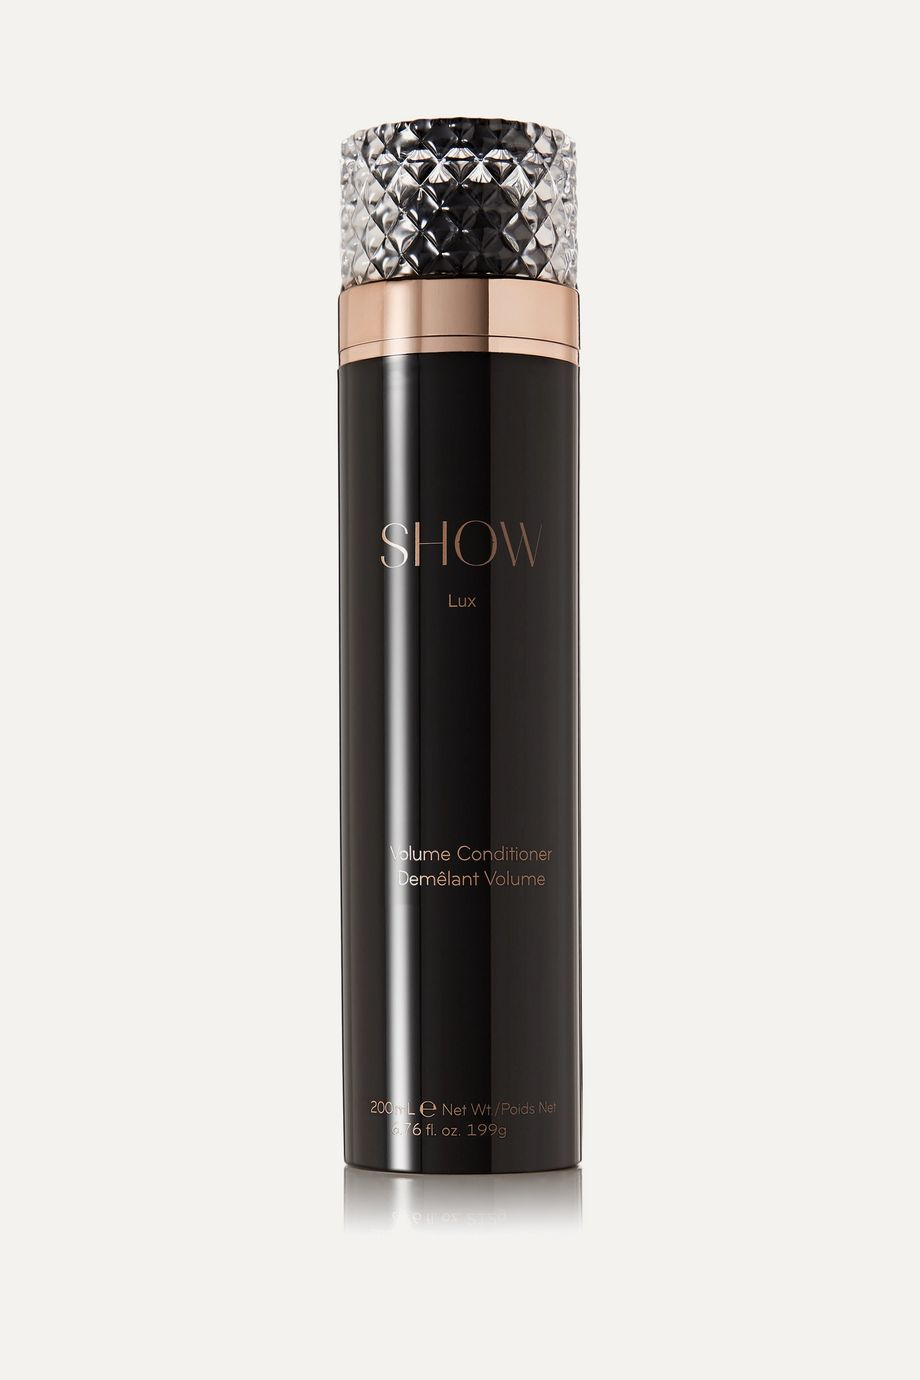 SHOW Beauty Lux Volume Conditioner, 200ml